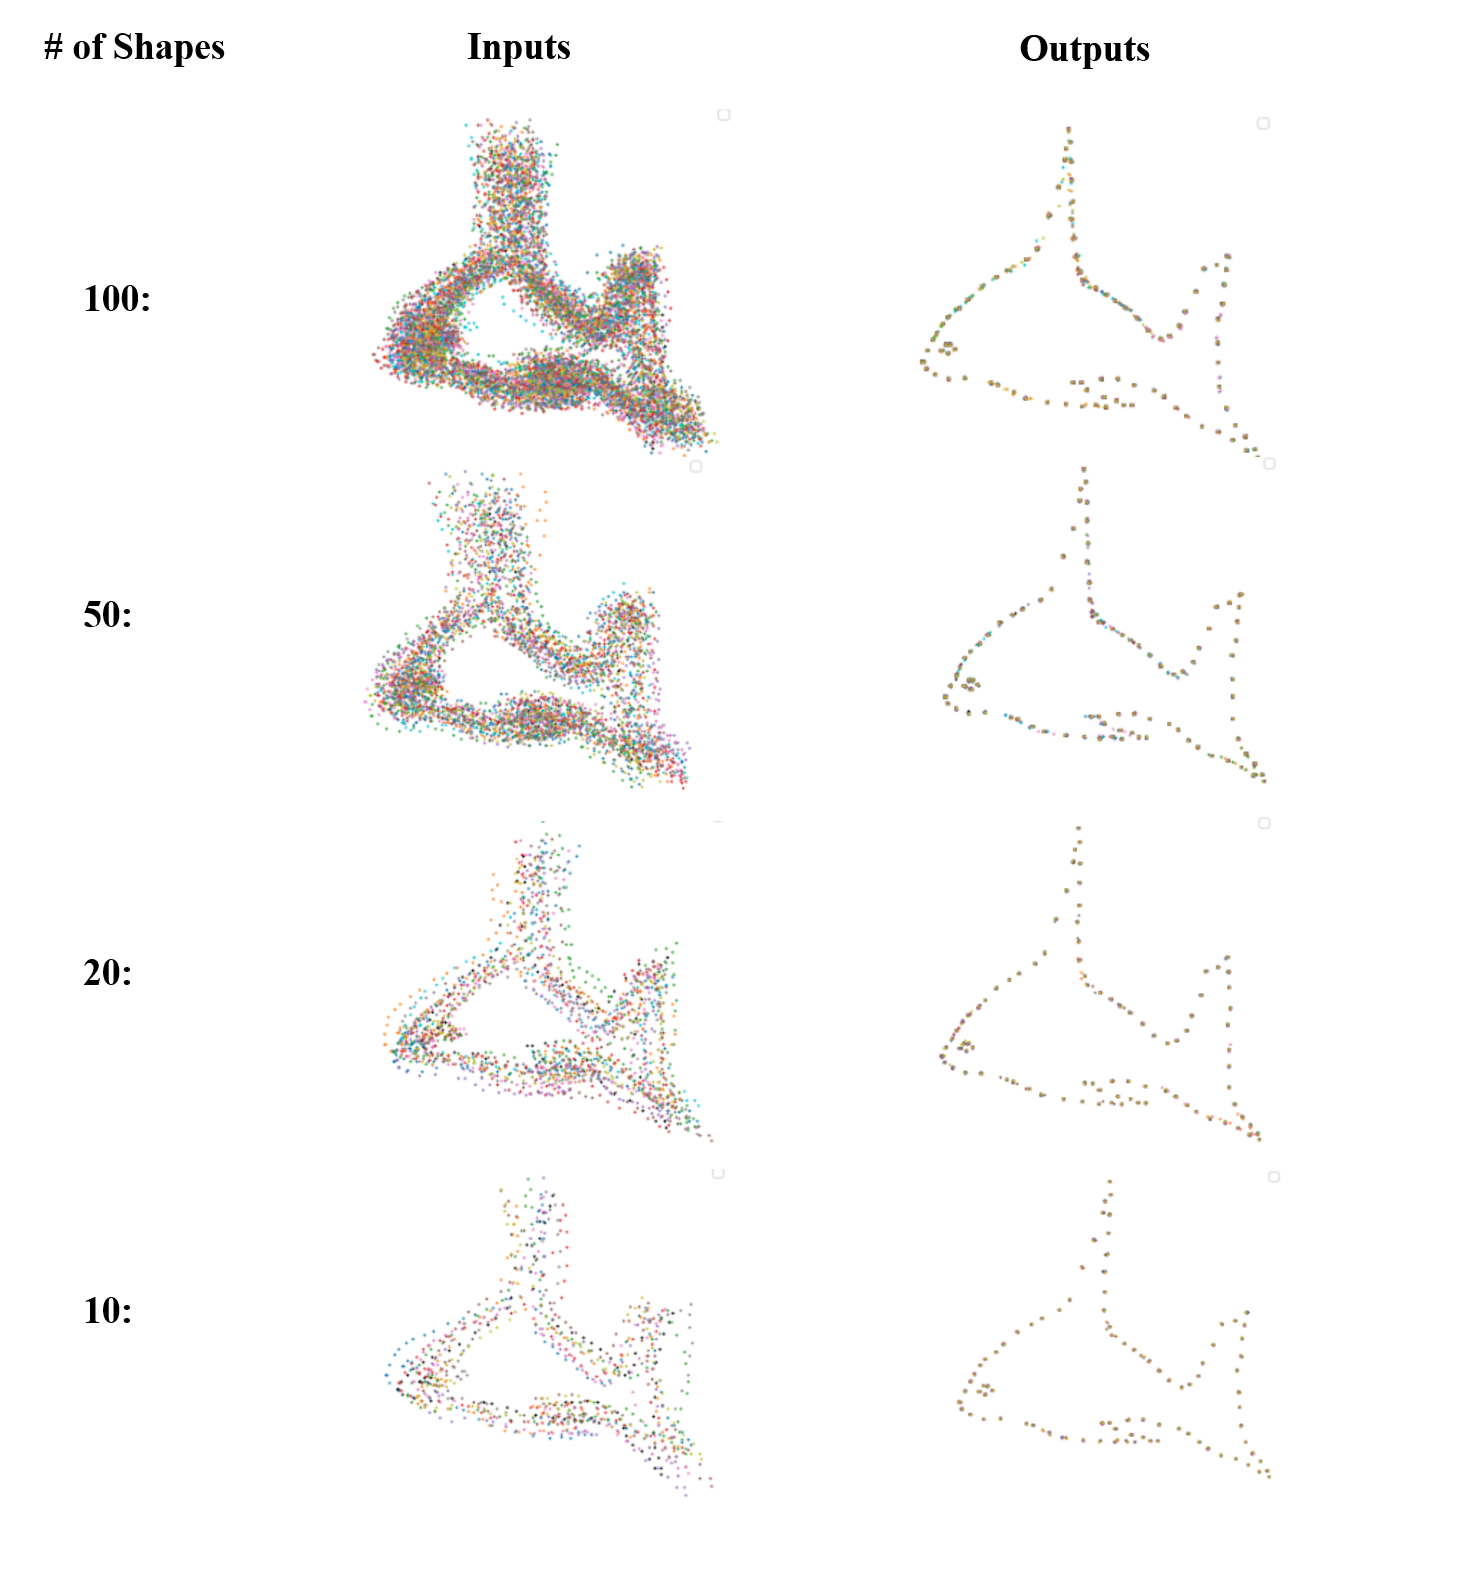 The qualitative registration results of aligning different number of fish-shaped point sets. Inputs include 10 to 100 point sets in different colors in presence of various non-rigid deformation.